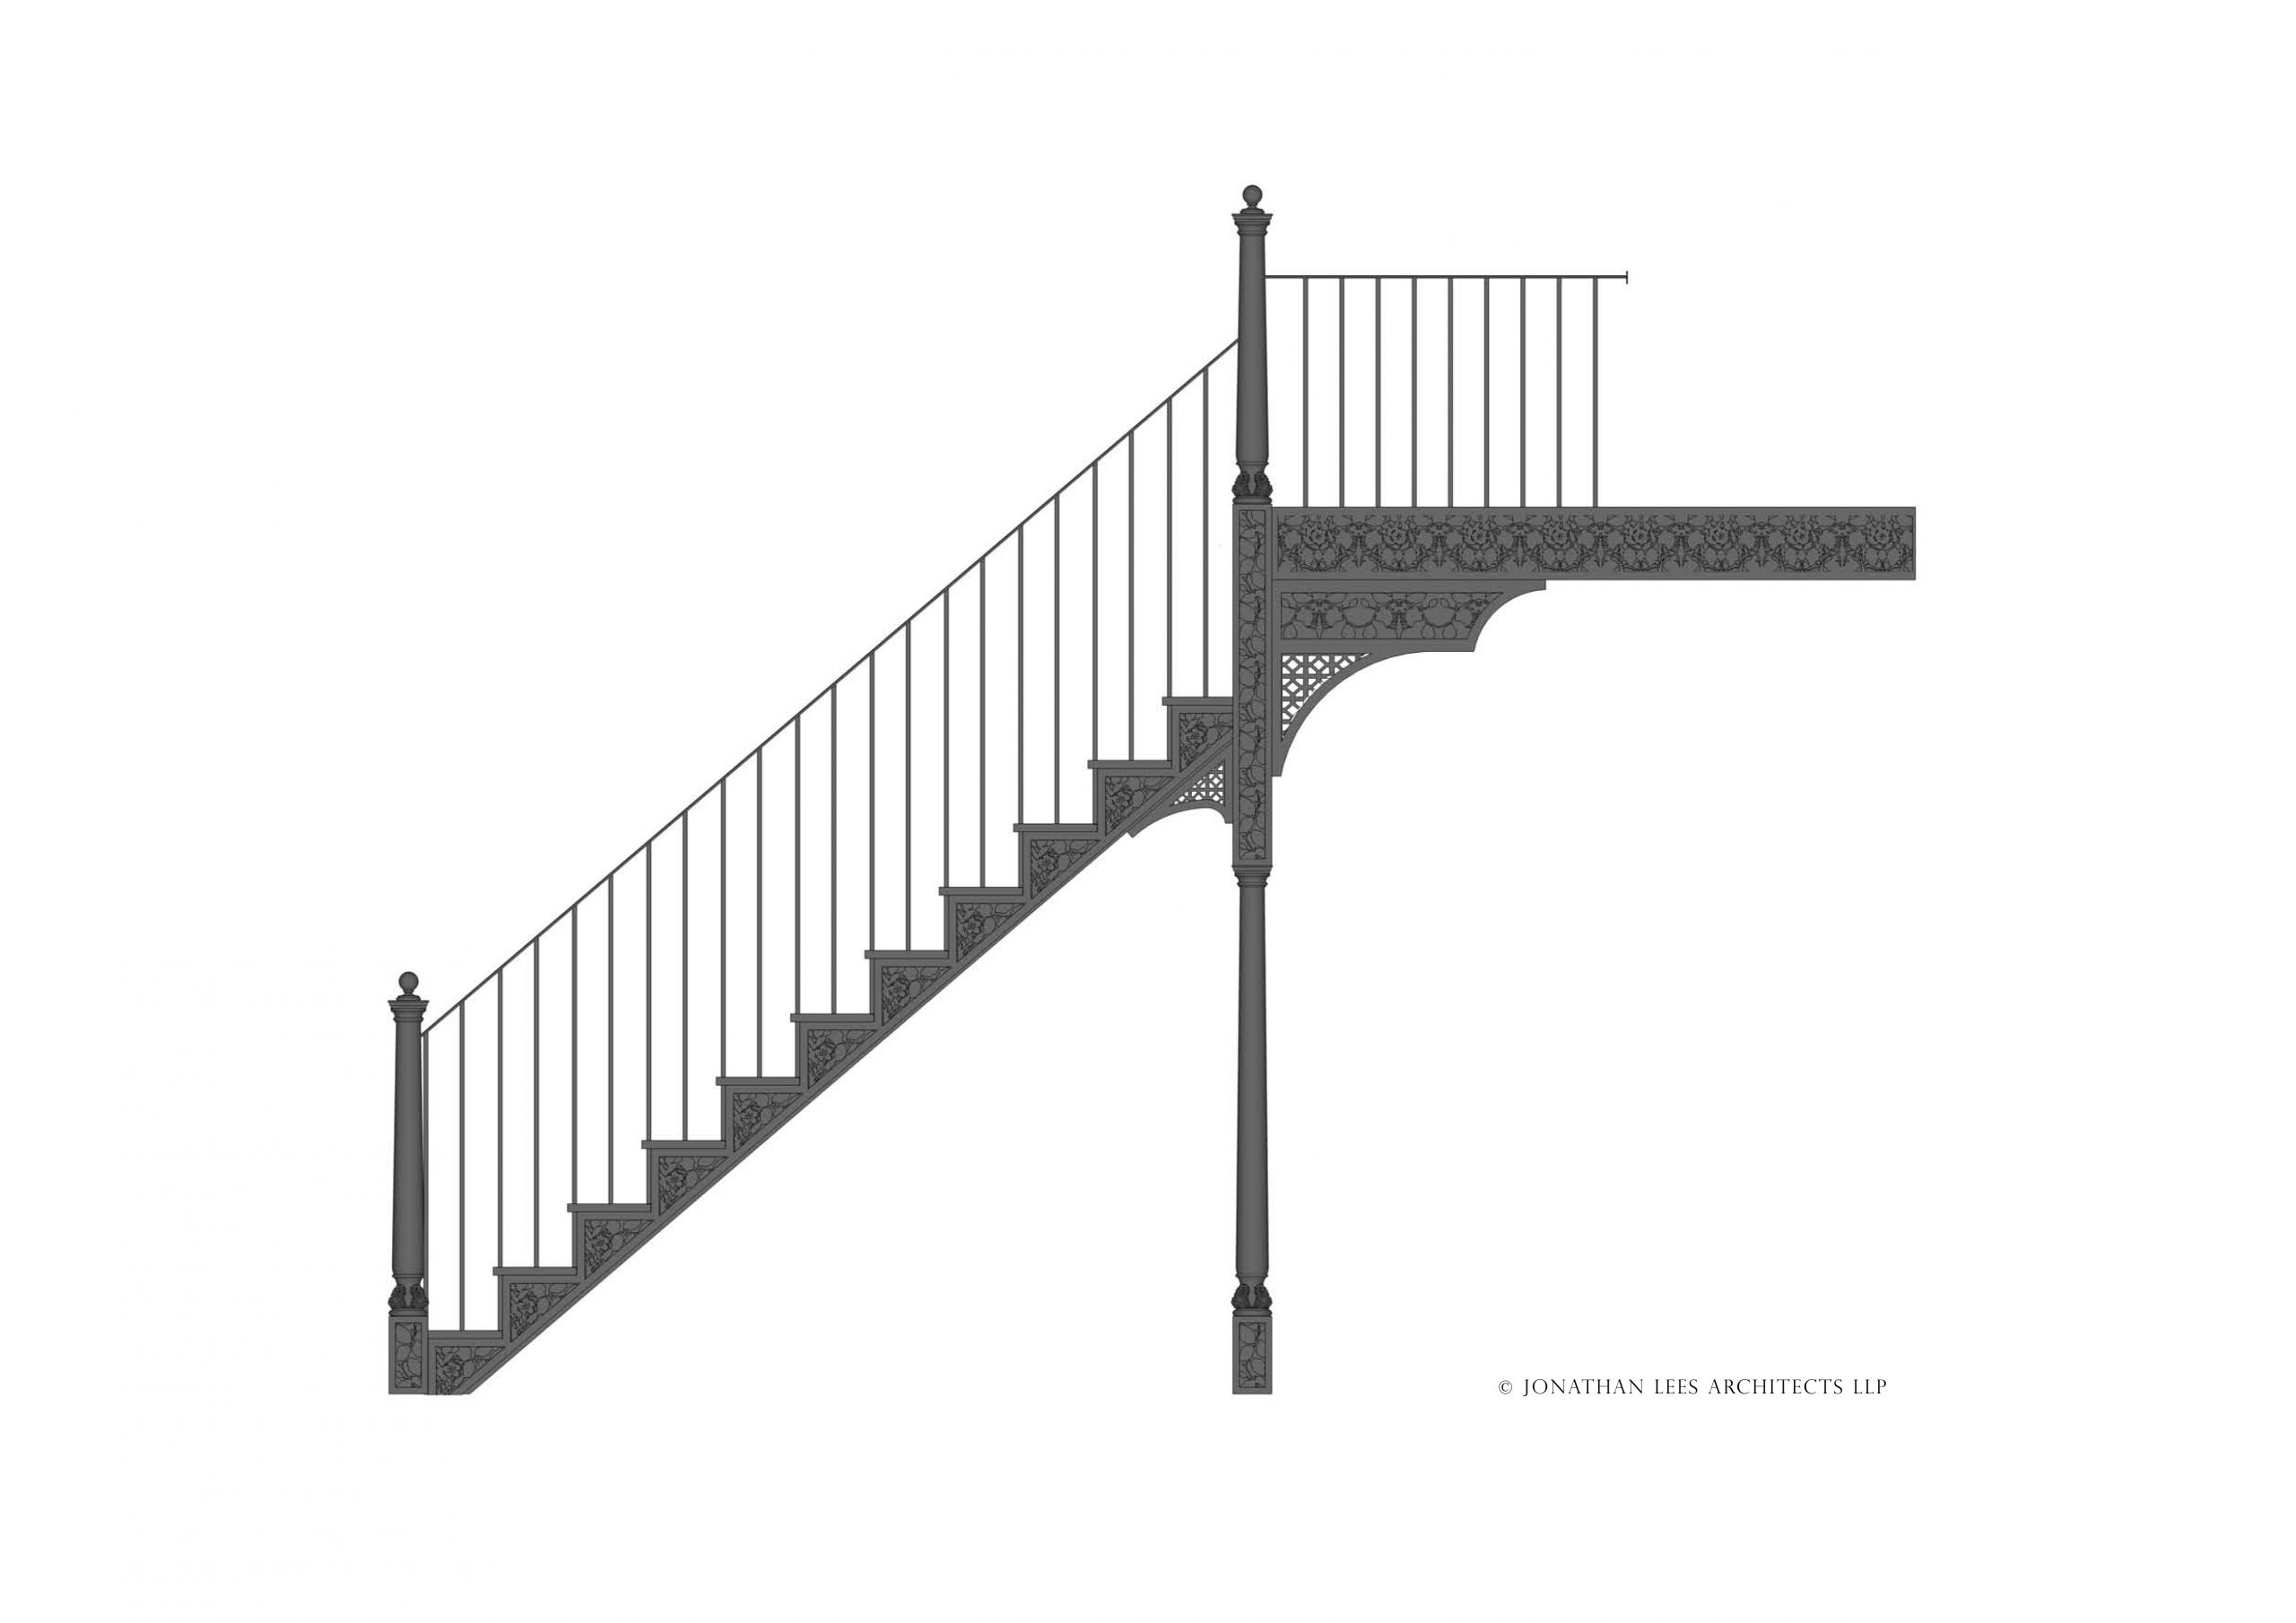 Decorative patterned metal staircase